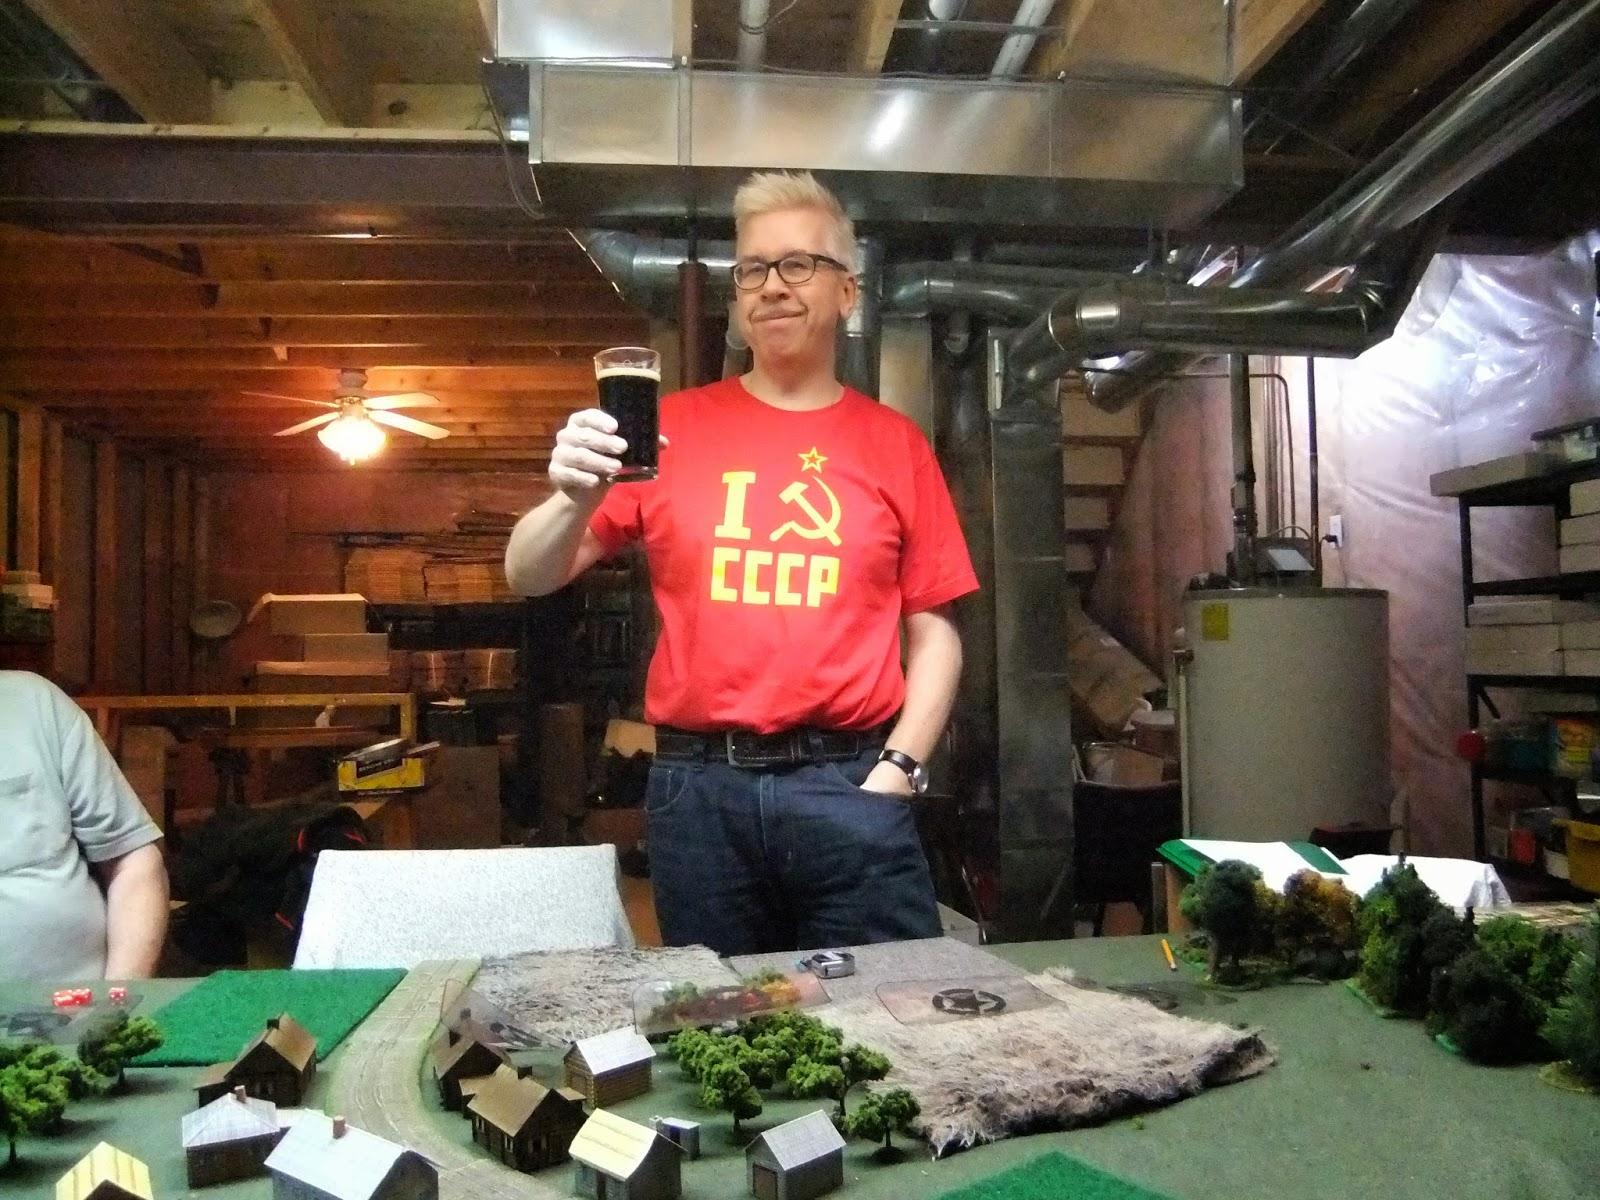 Mike toasts his heroic Soviet hordes with some Russian Gun Imperial Stout, which actually sounds rather counter-revolutionary come to think of it...